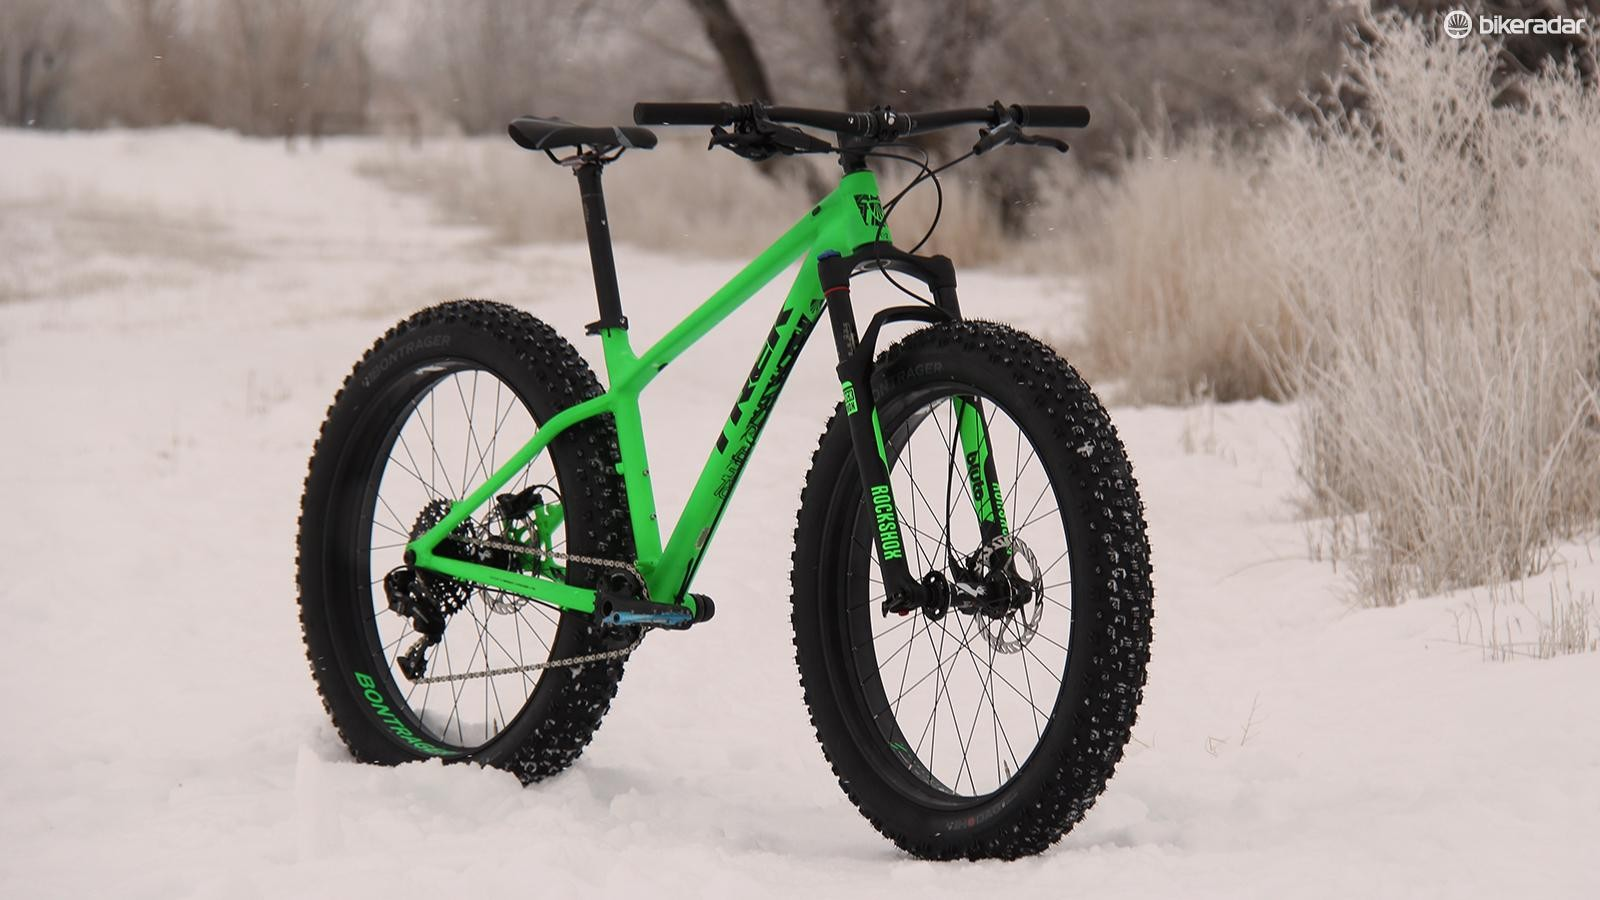 The Farley 8 is Trek's top-end fat bike for 2015